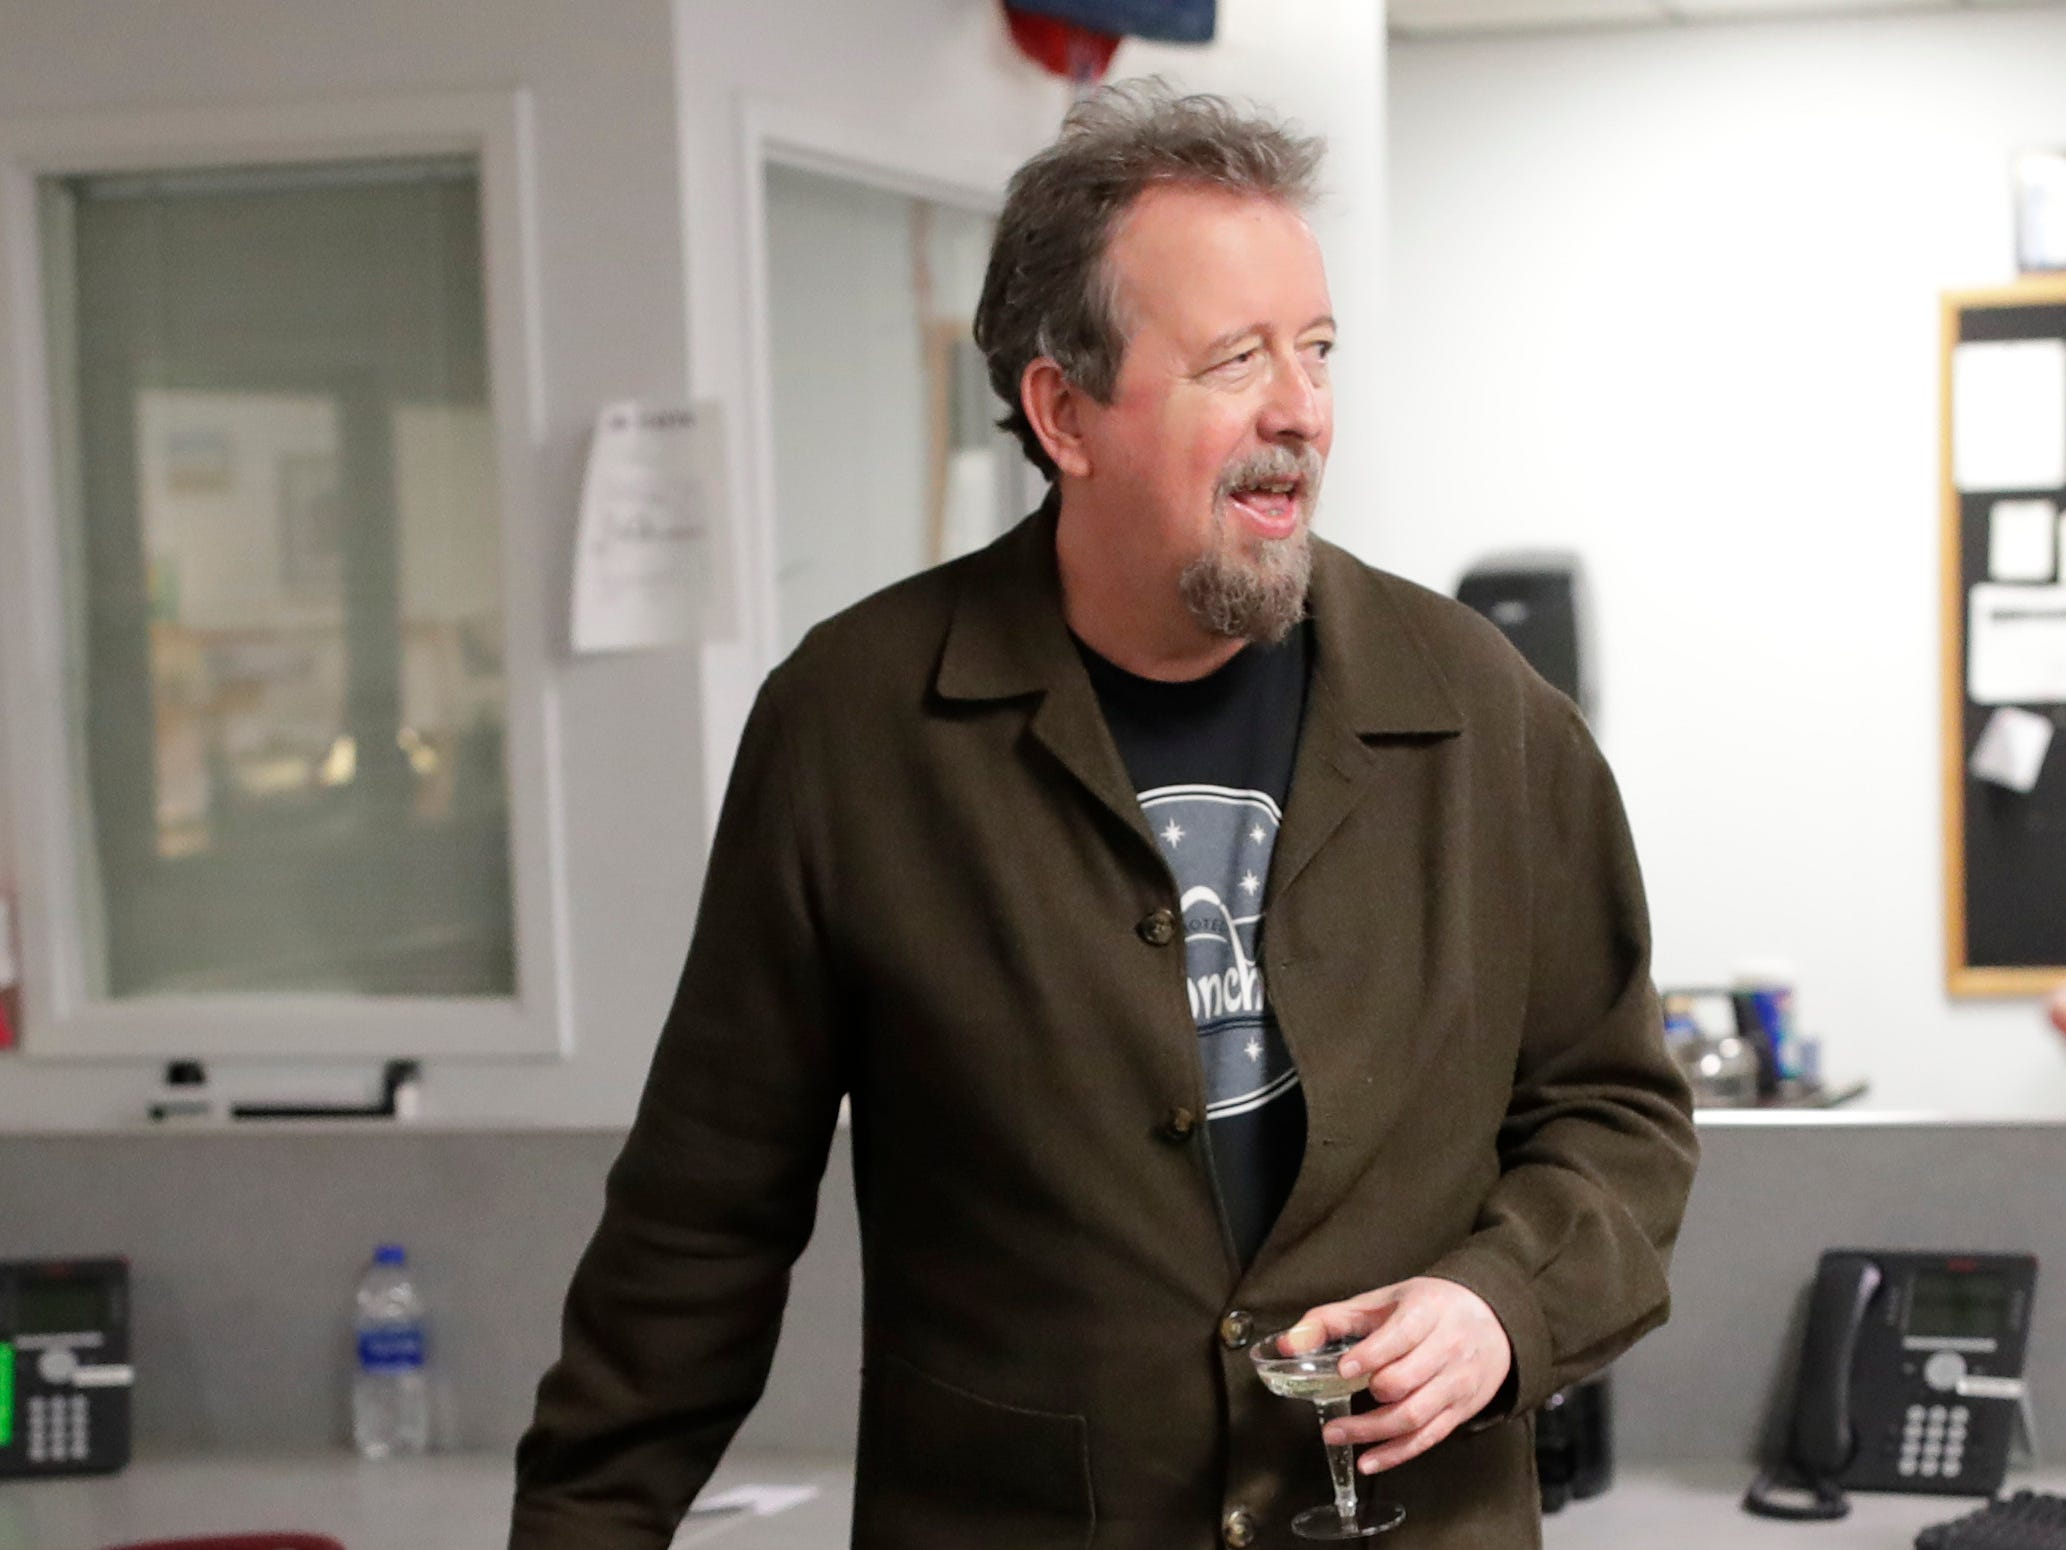 Former Arts and Entertainment Editor Mark Hinson holds a glass of Prosecco as his colleagues gather around to say goodbye to him on his last day of work at the Tallahassee Democrat Wednesday, Jan. 2, 2019.